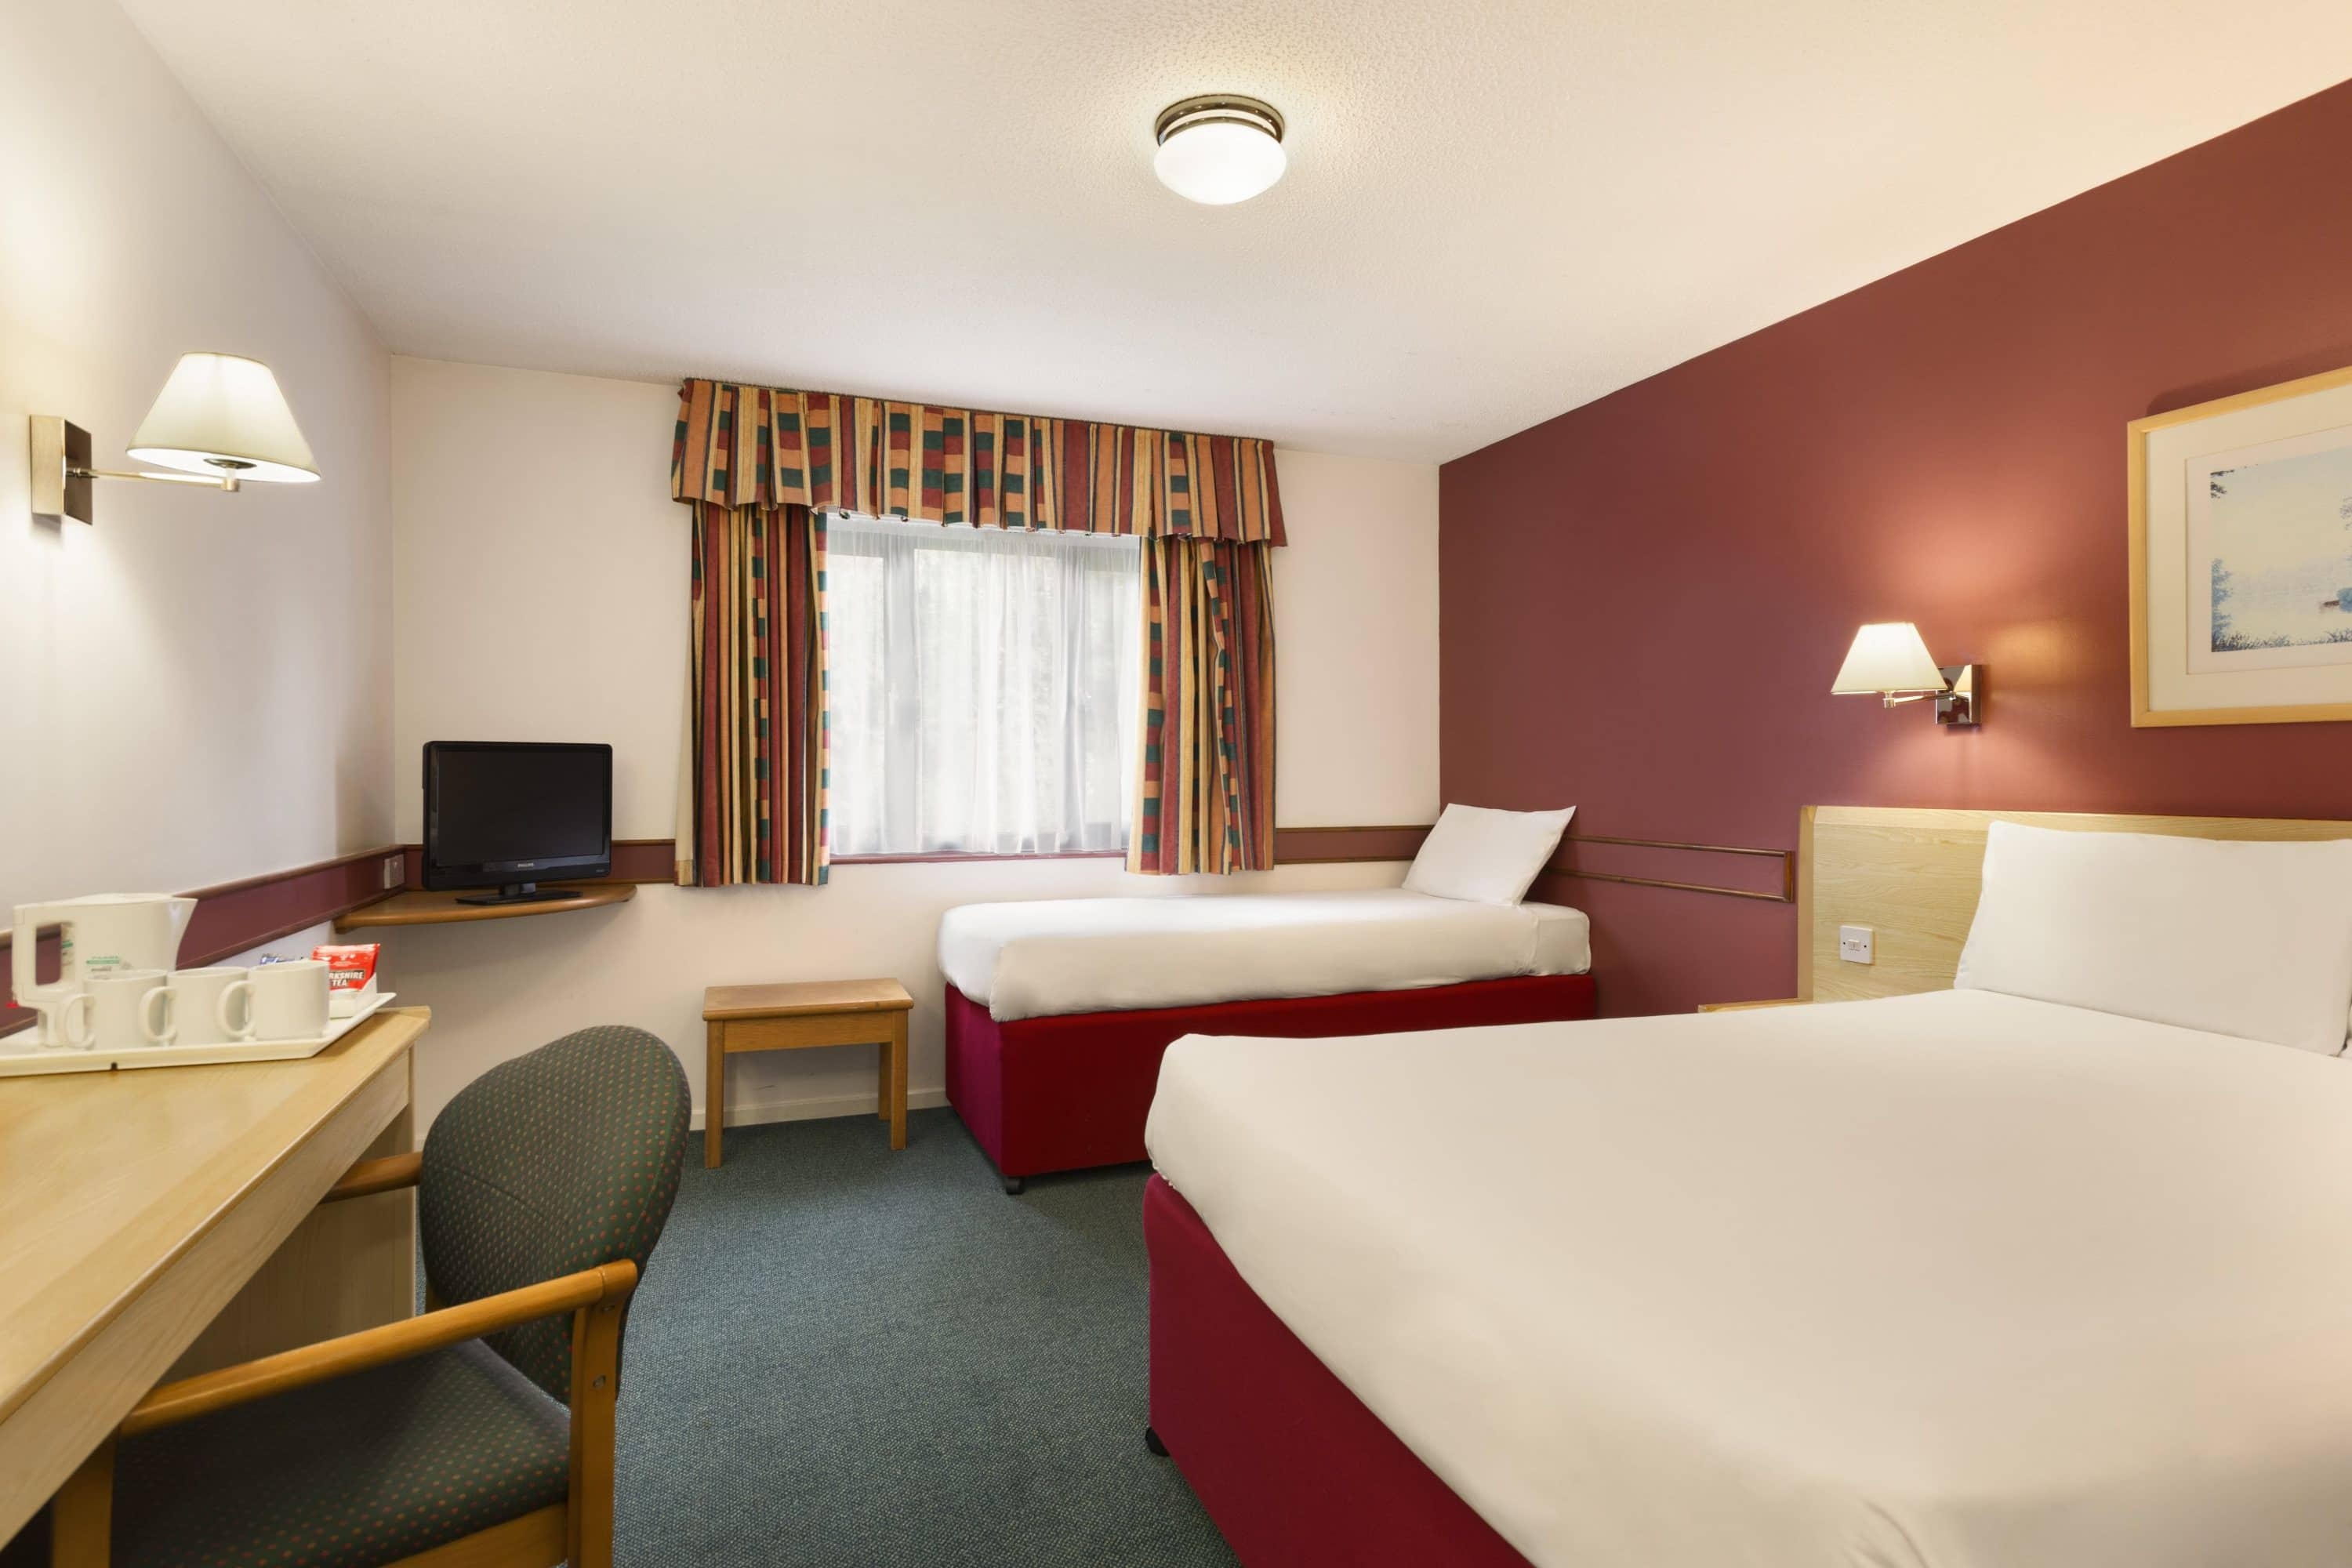 Guest room at the Days Inn Bradford M62 in Yorkshire, Other than US/Canada